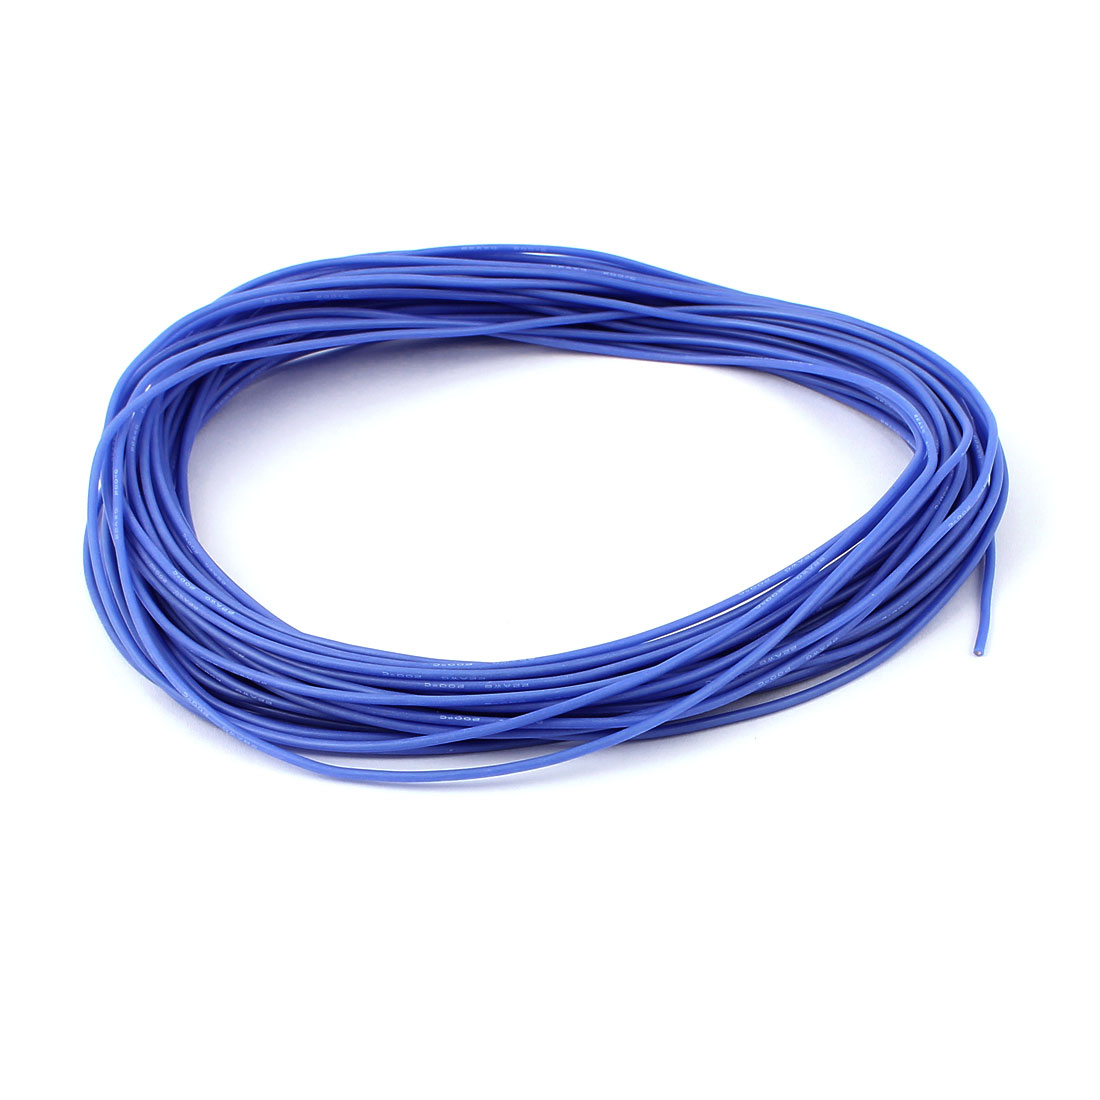 15M 22AWG Electric Copper Core Flexible Silicone Wire Cable Blue